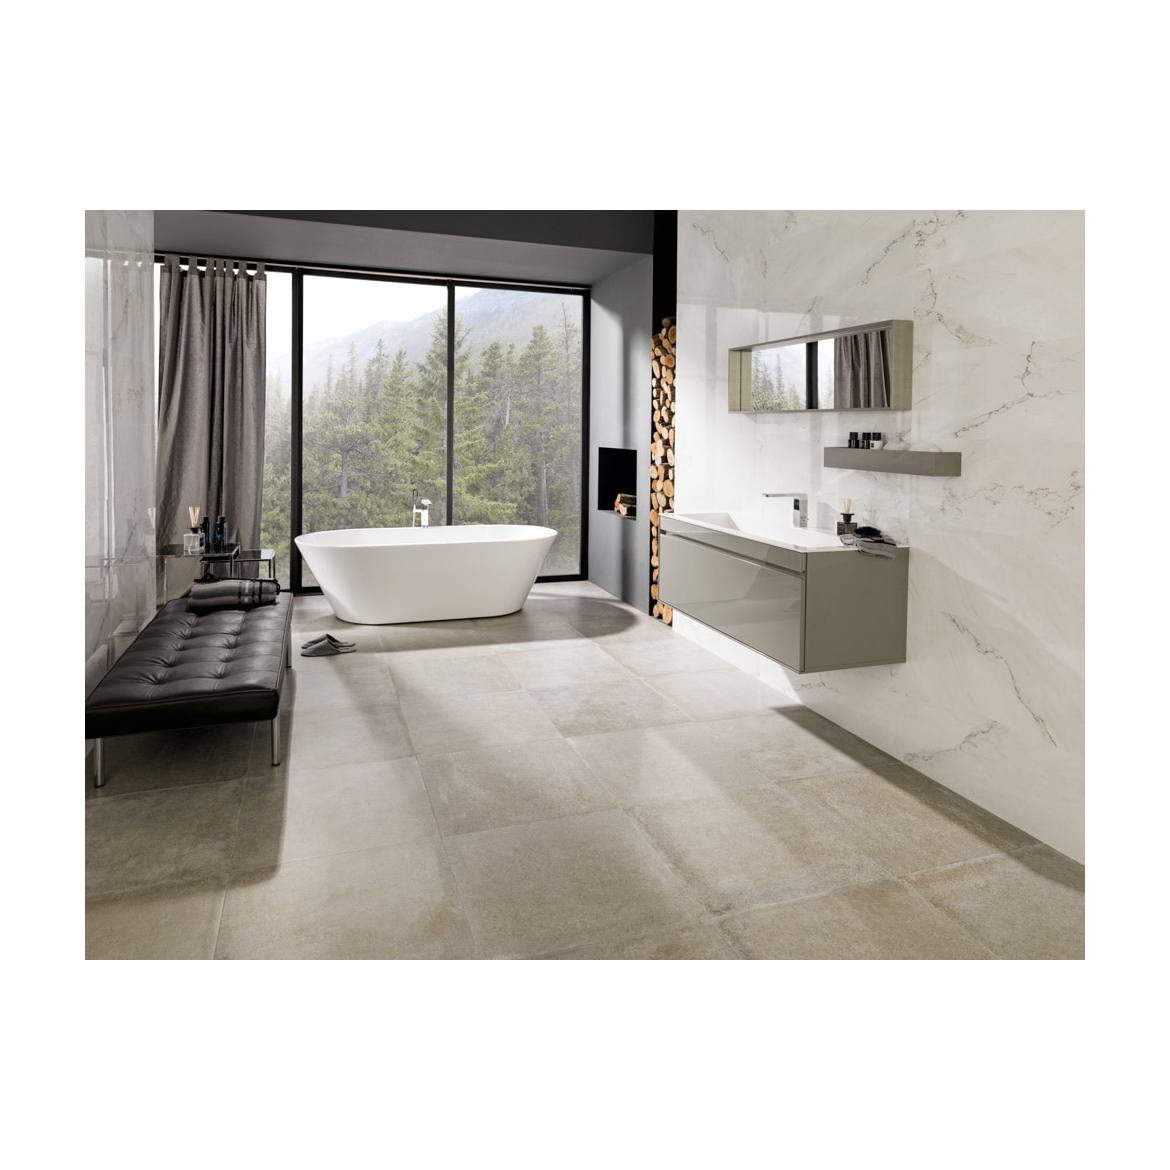 https://cerdesign.pl/2114-large_default/plytki-venis-bianco-carrara-45x120.jpg